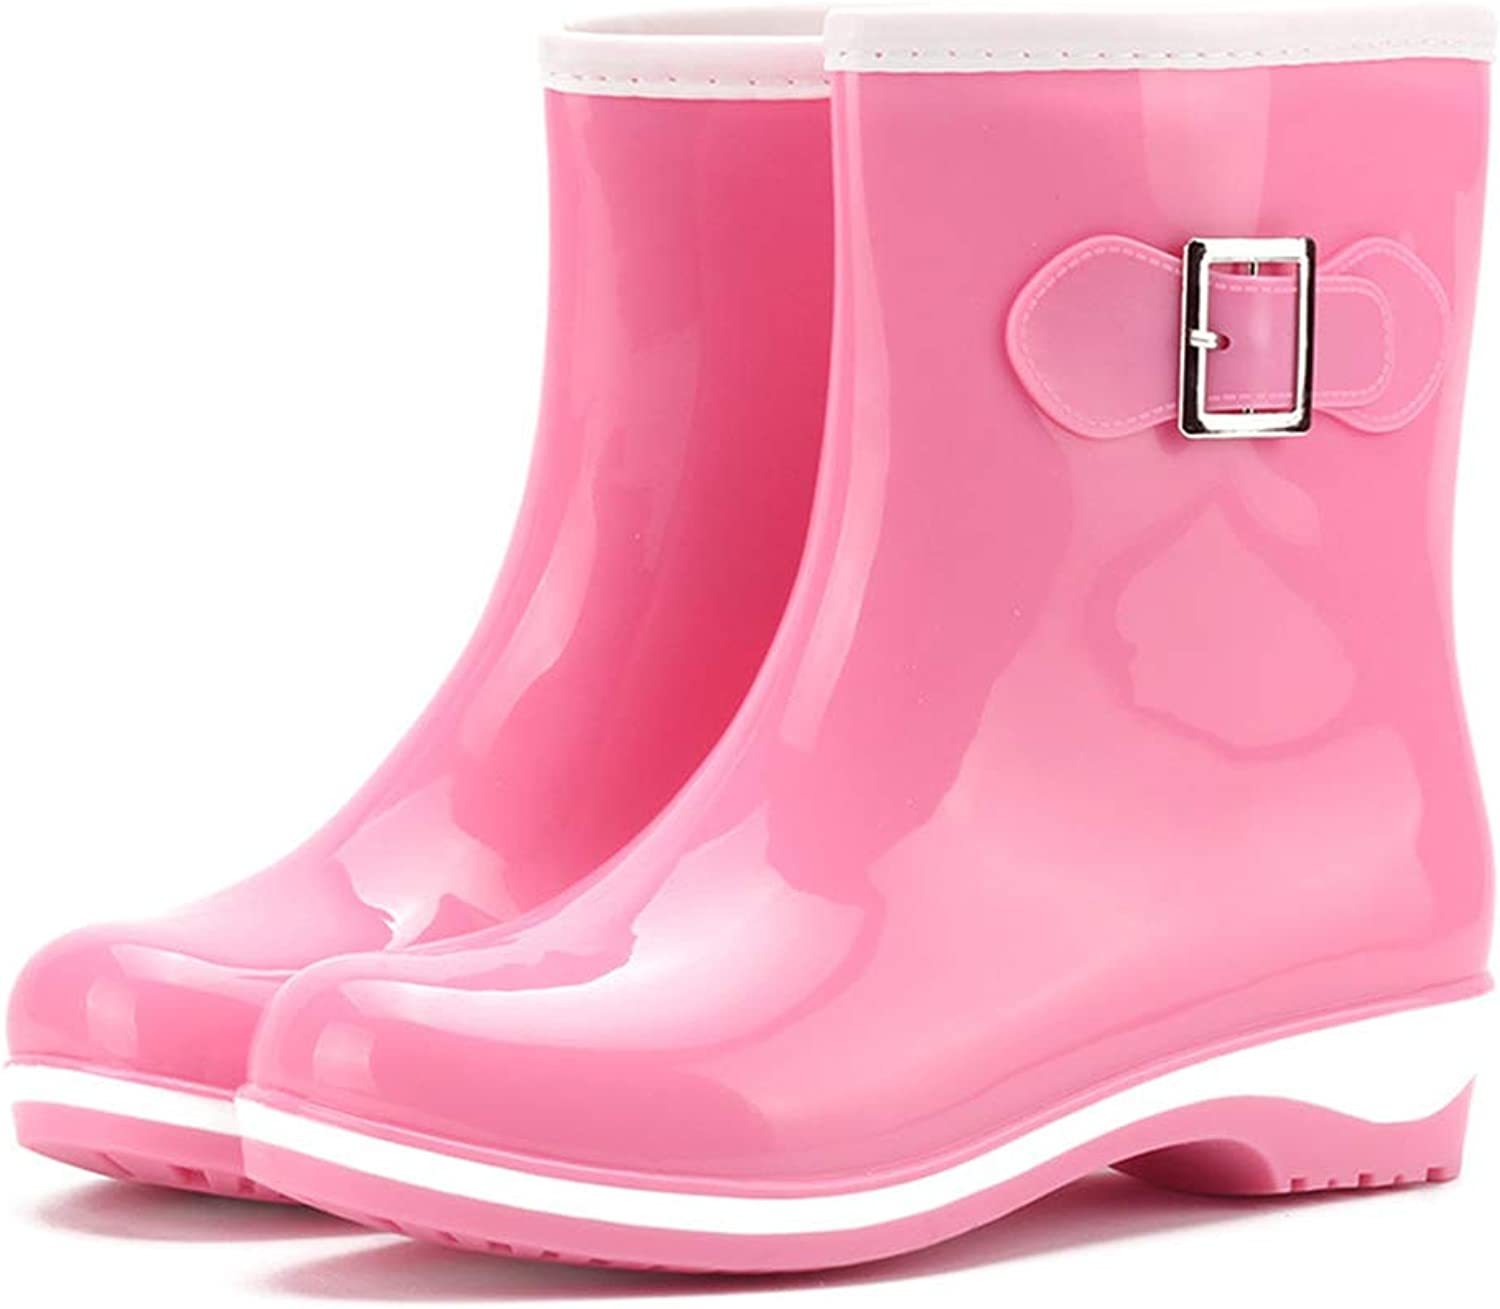 Fancyww Women's Warm Solid color Non-Slip Jelly rain Boots